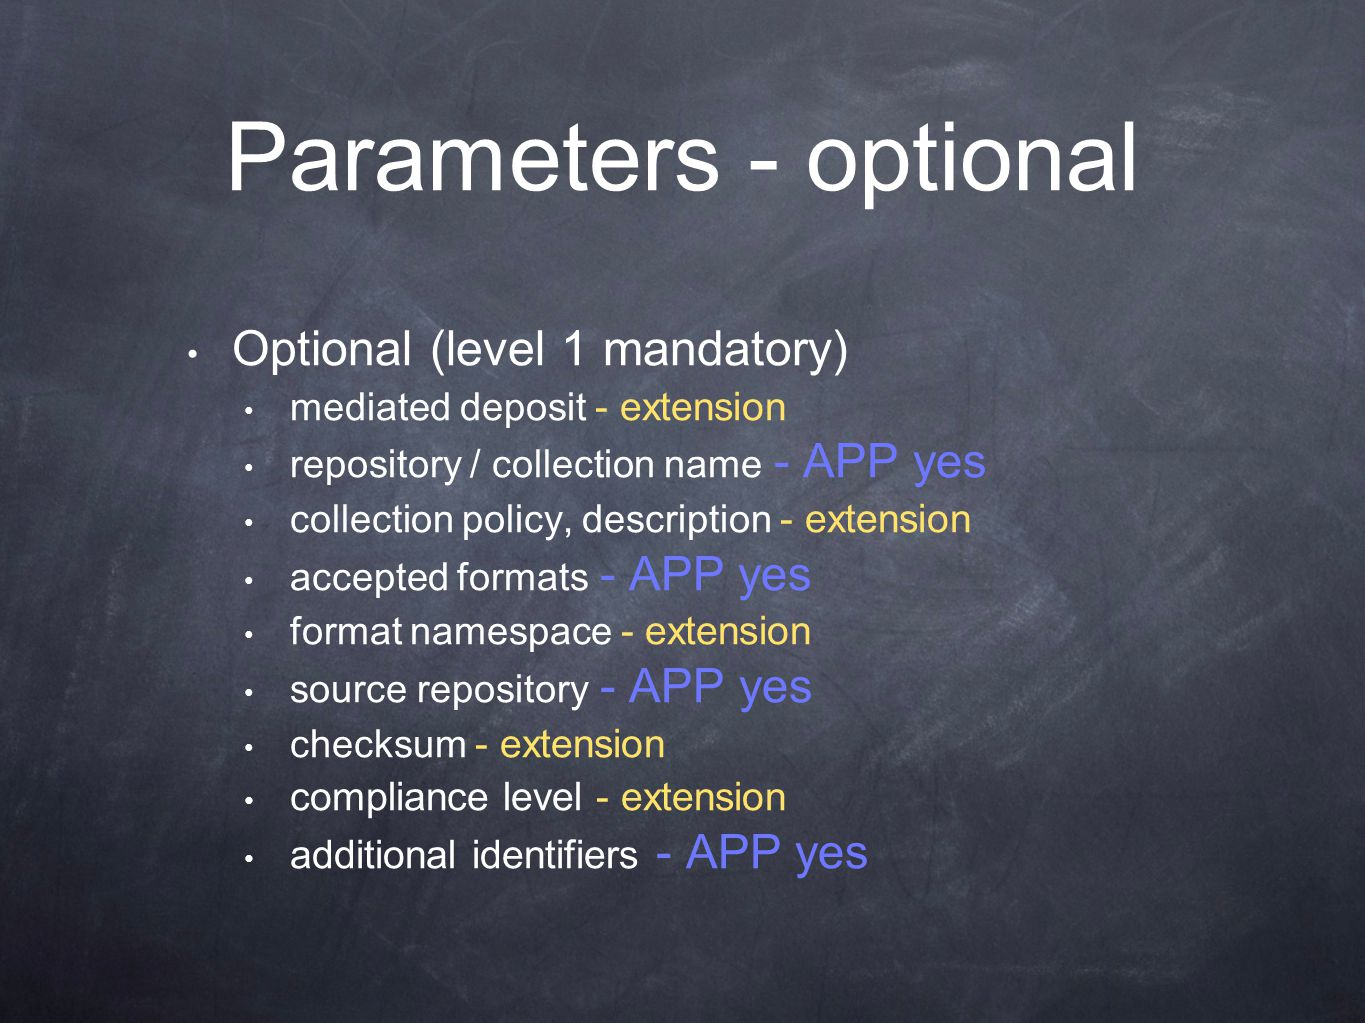 Parameters - optional Optional (level 1 mandatory) mediated deposit - extension repository / collection name - APP yes collection policy, description - extension accepted formats - APP yes format namespace - extension source repository - APP yes checksum - extension compliance level - extension additional identifiers - APP yes